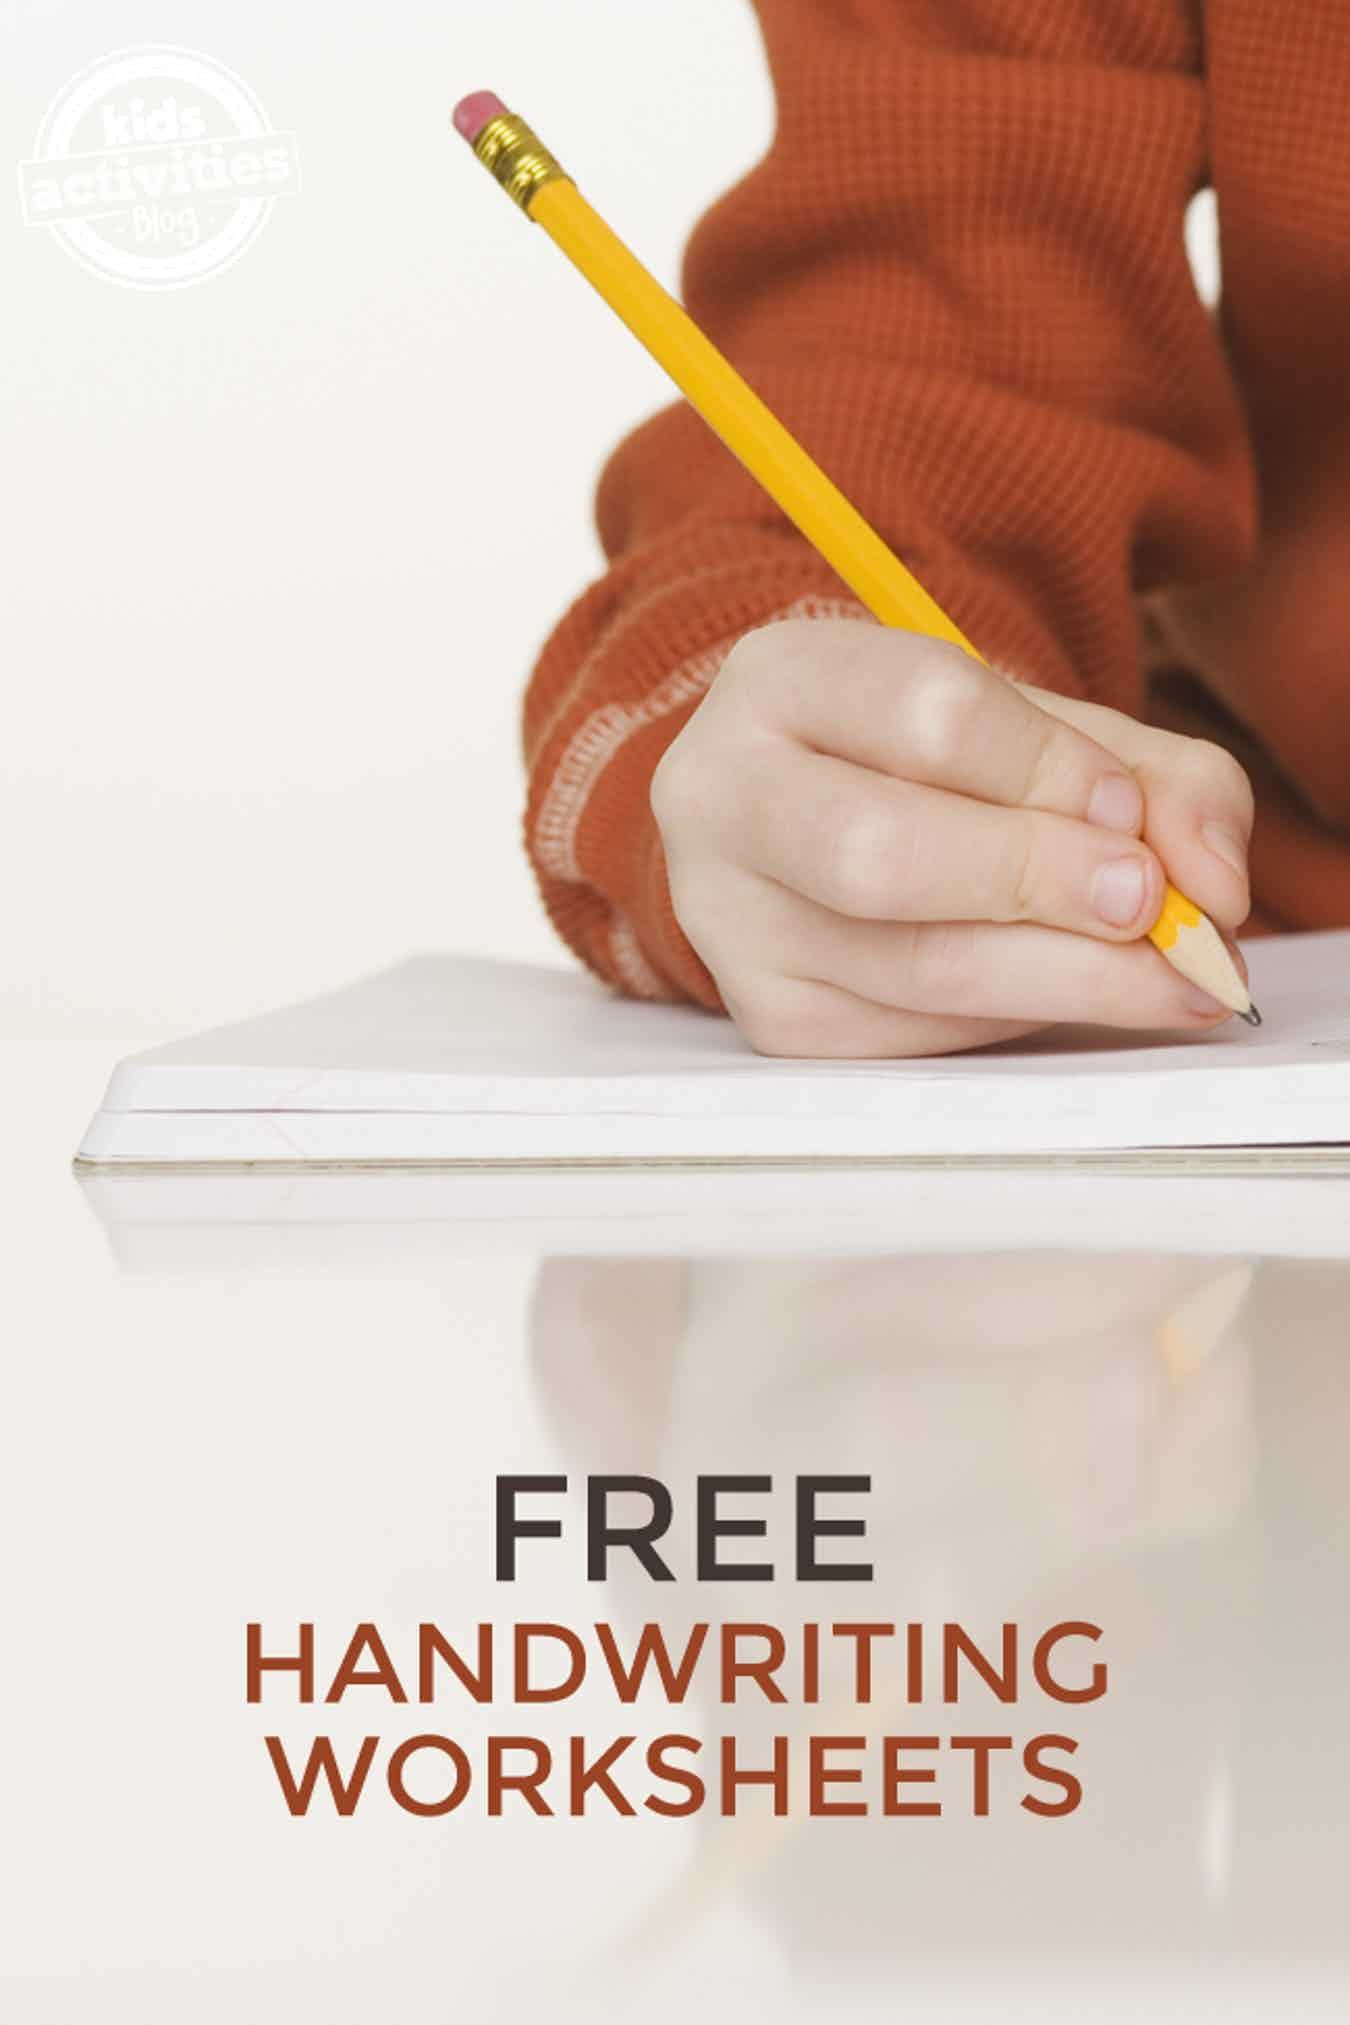 10 Free Handwriting Worksheets